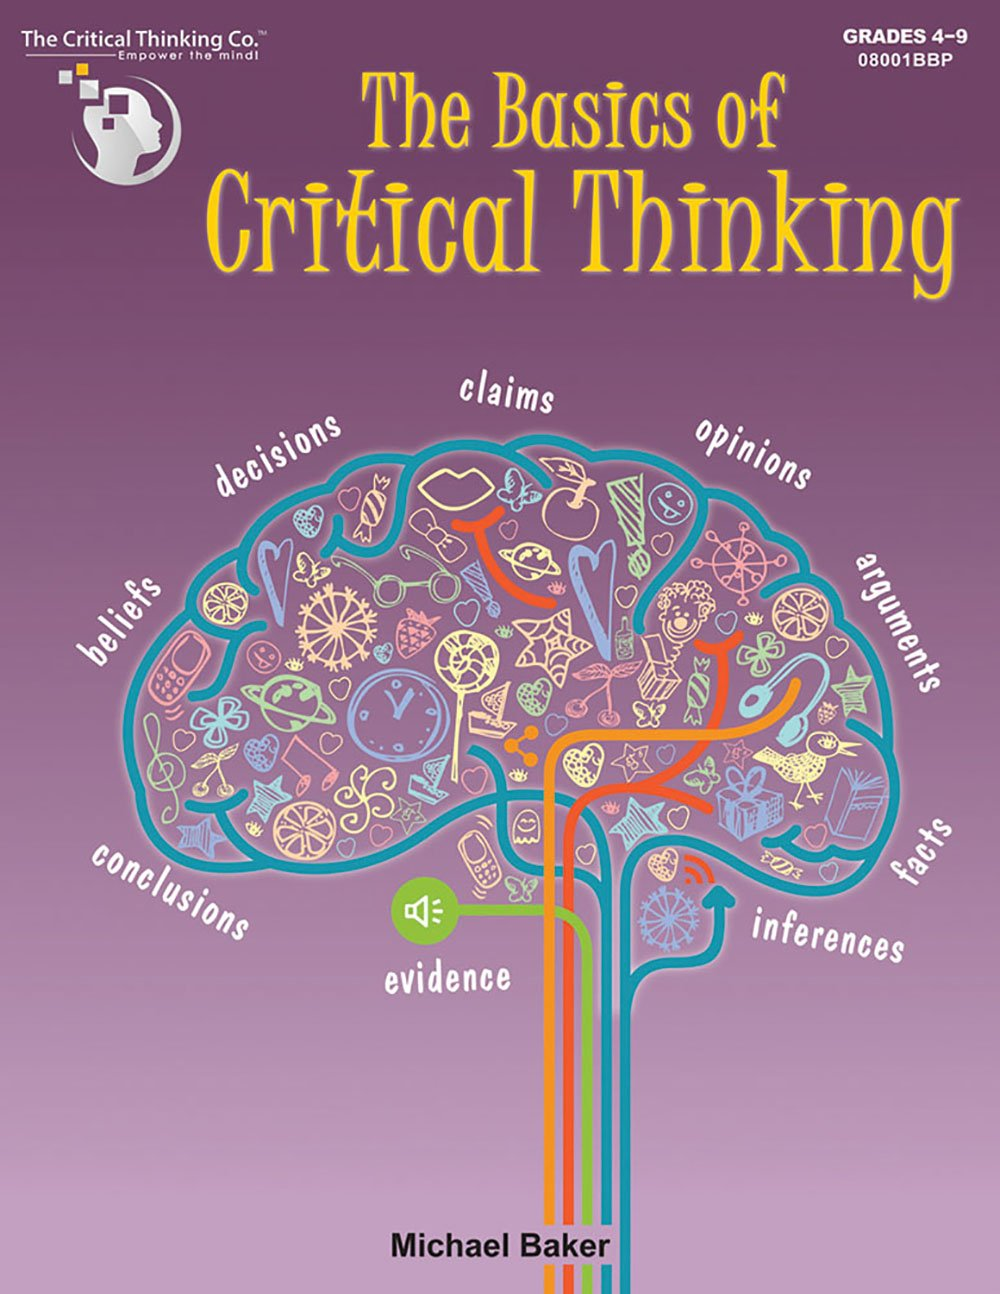 writing science through critical thinking [critical thinking and writing for nursing students] help students develop critical thinking writing and reflection by bob price, anne harrington [developing critical thinking through science] students learn the scientific method and develop by june main, paul eggen.